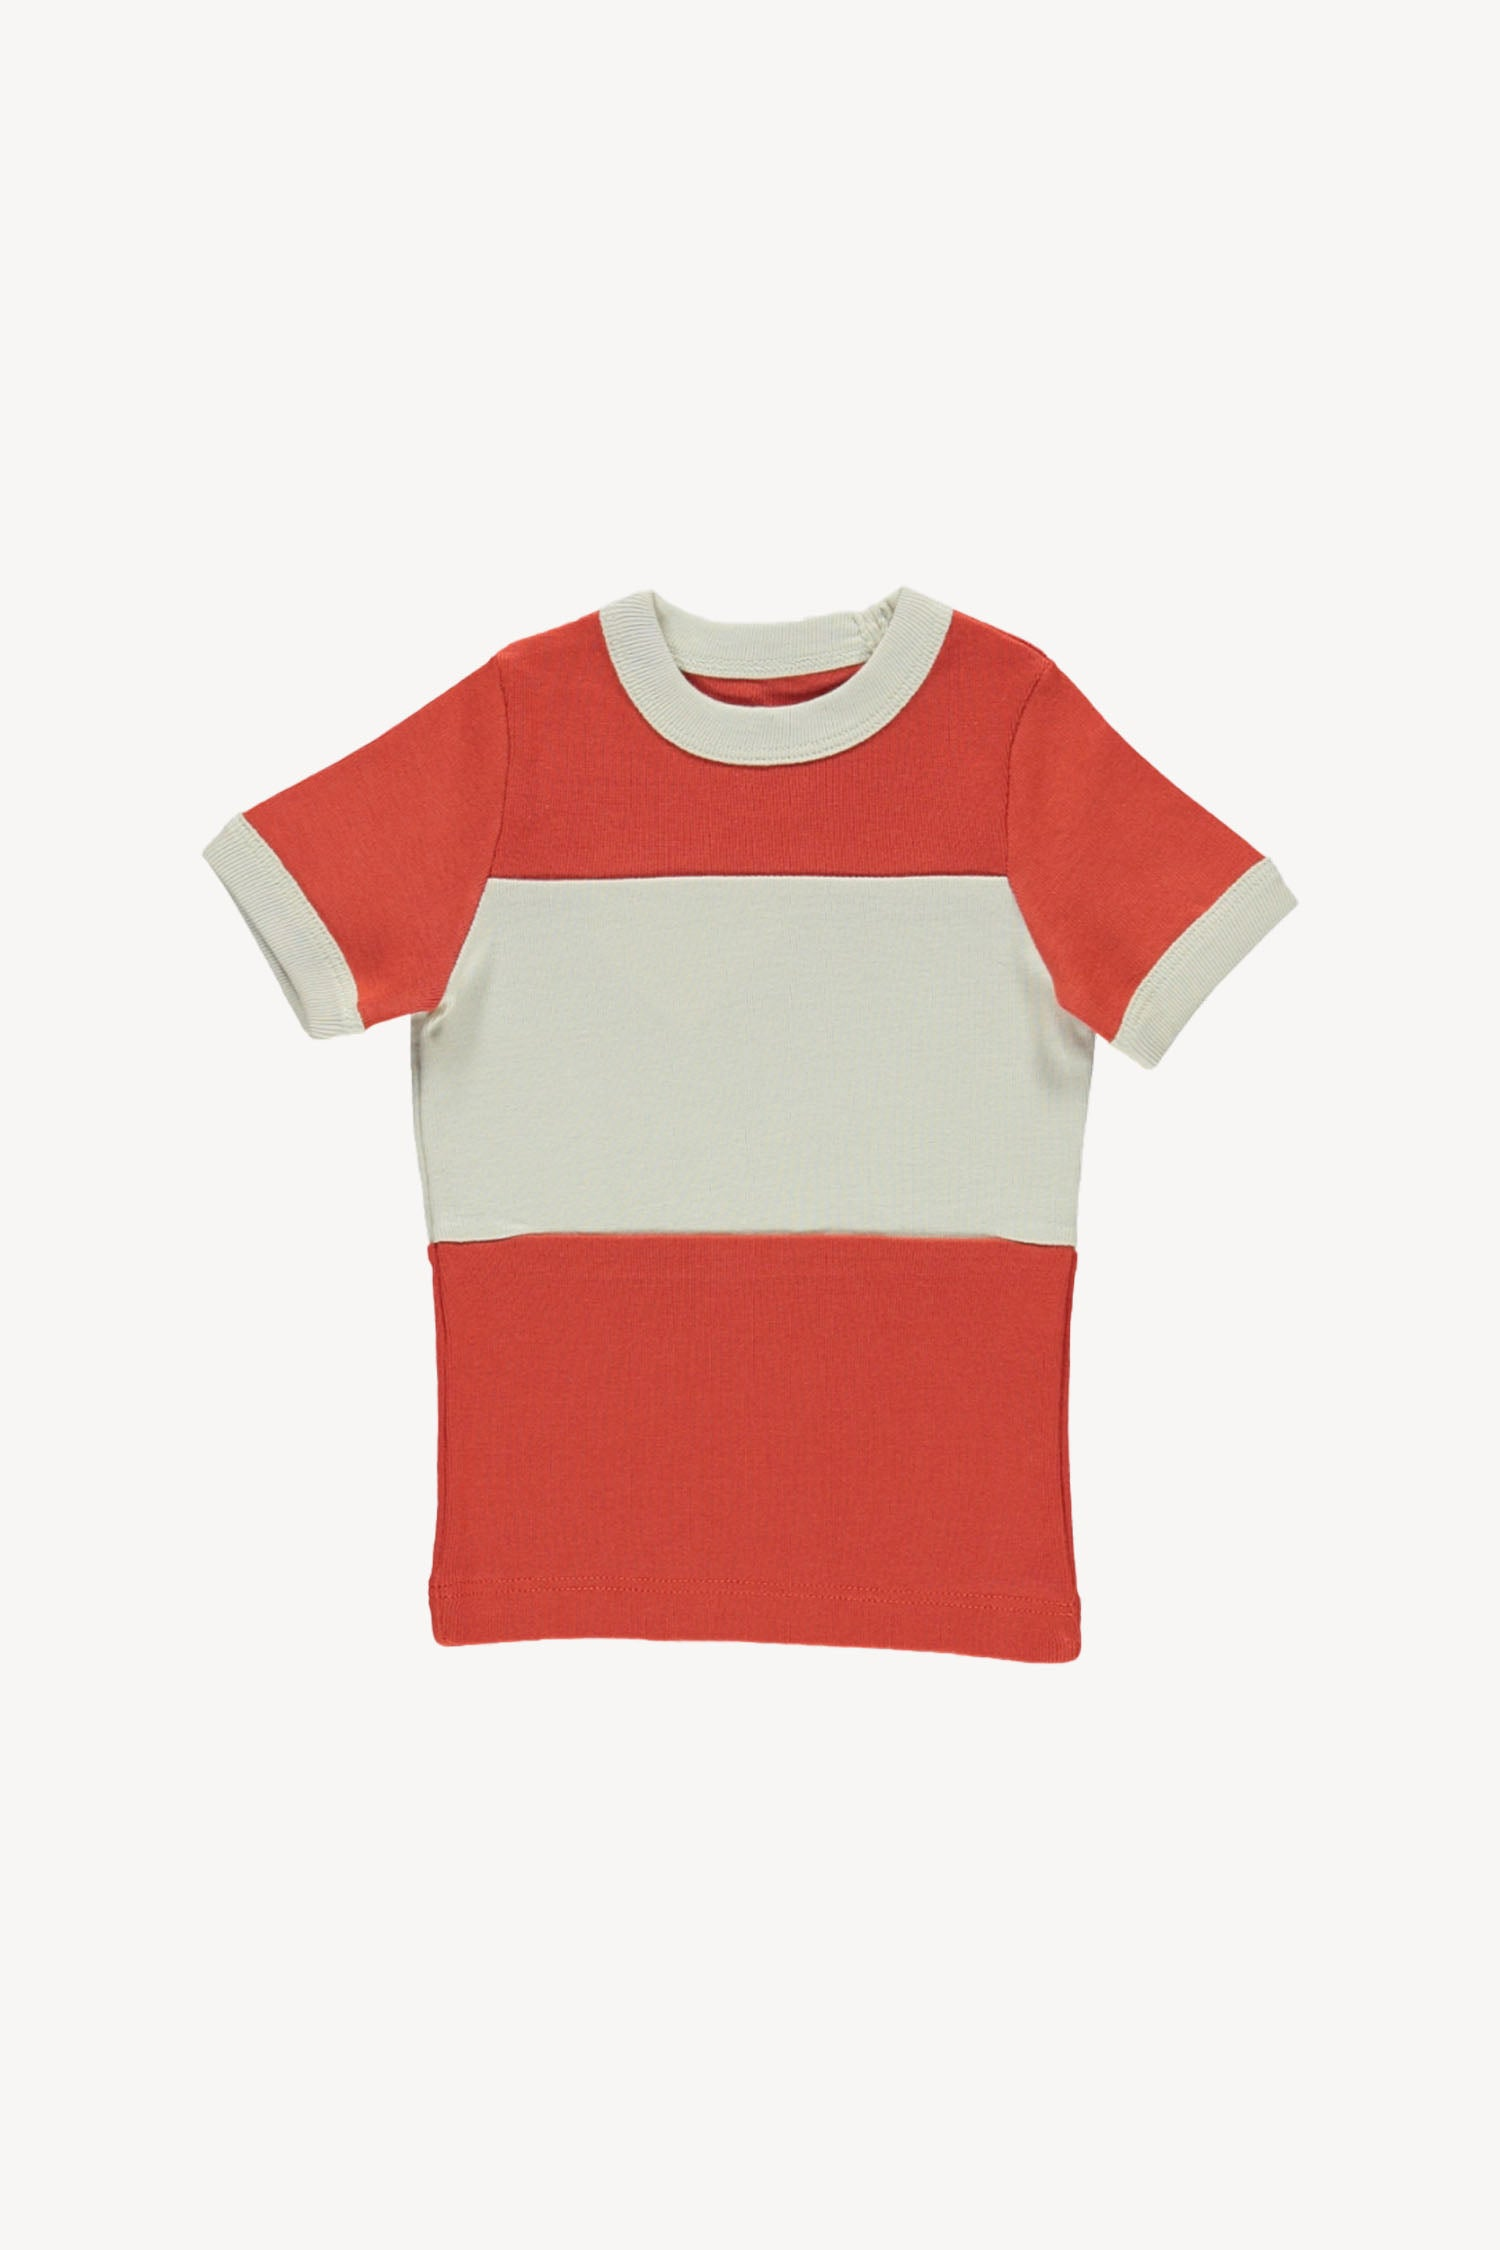 Fin and Vince - Vintage Tee (Brick Red) - Only 12/18